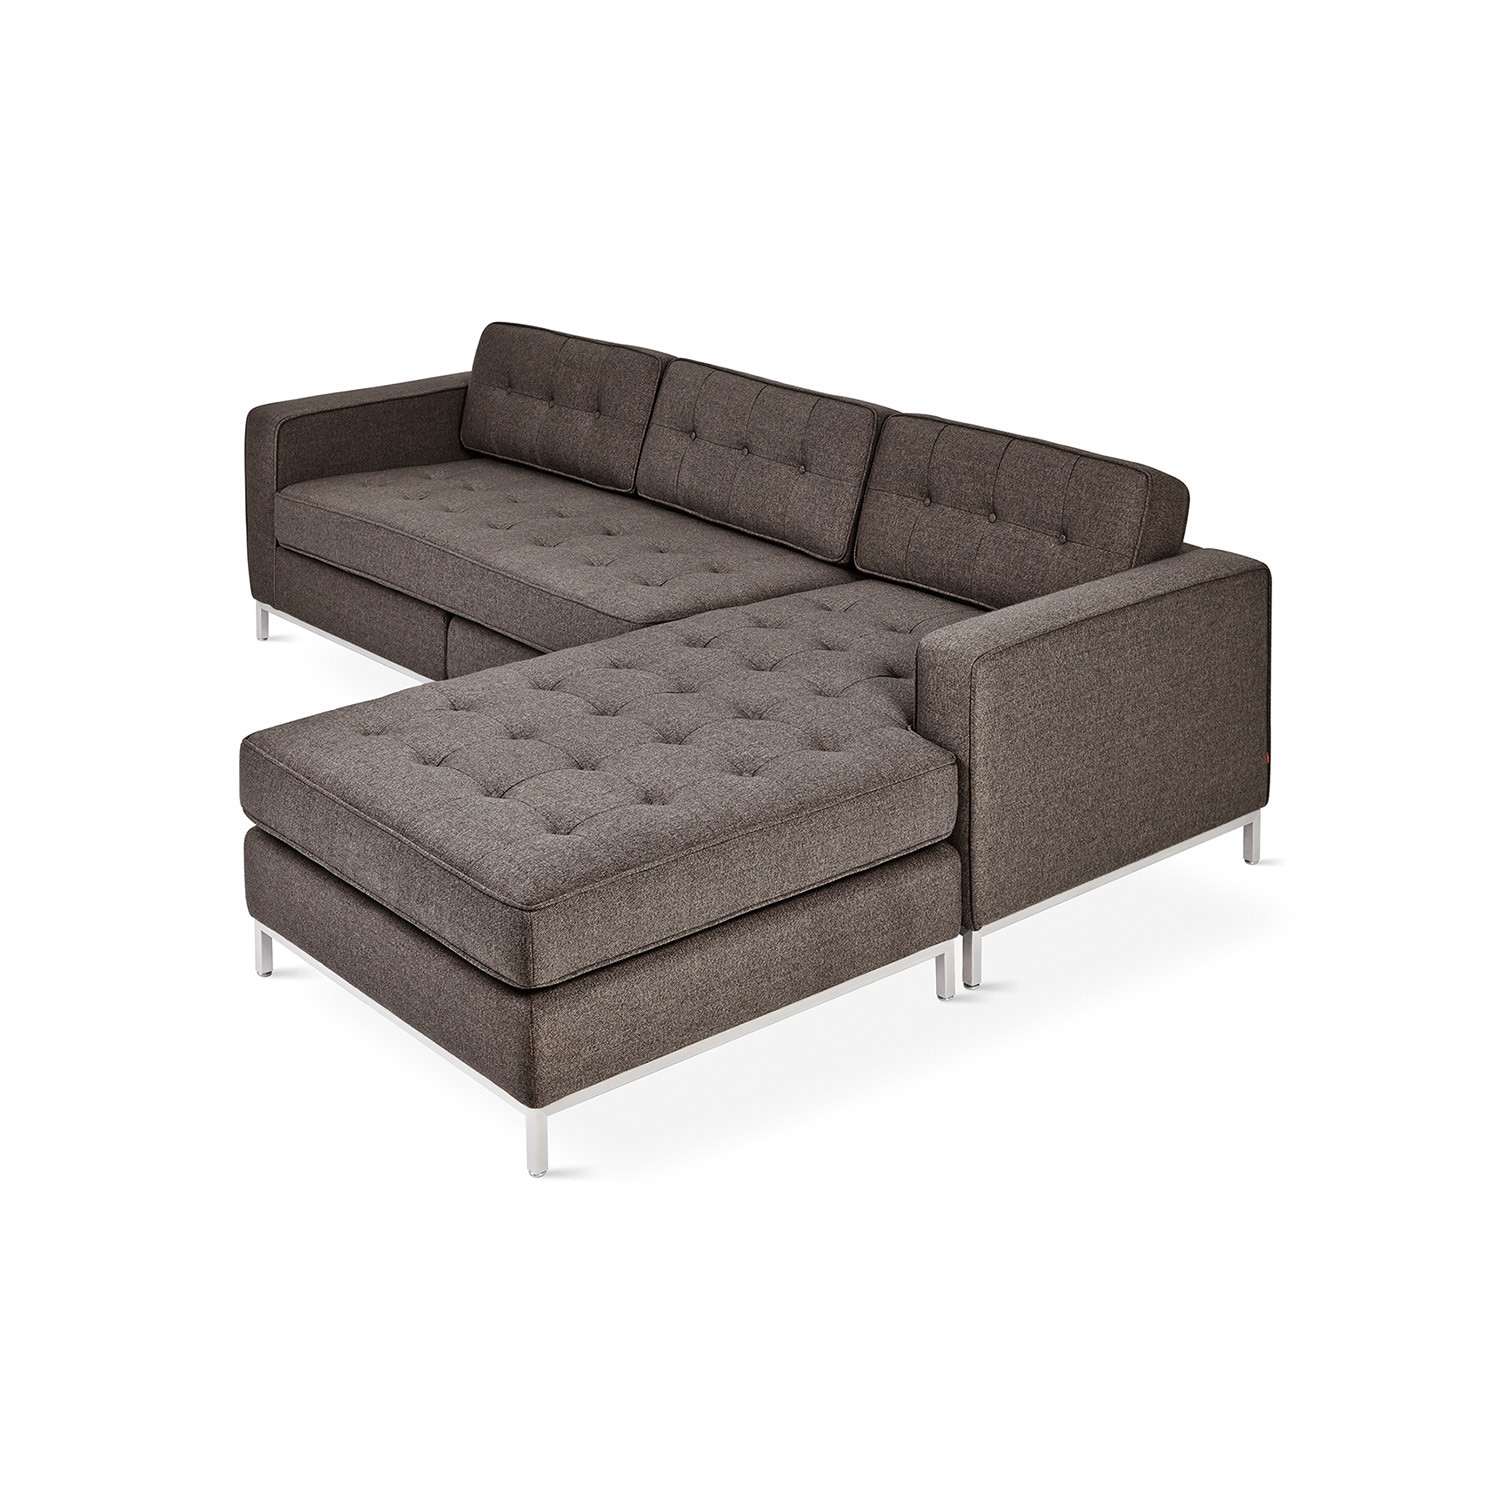 Jane BiSectional Stainless Steel Base Bayview Silver Gus